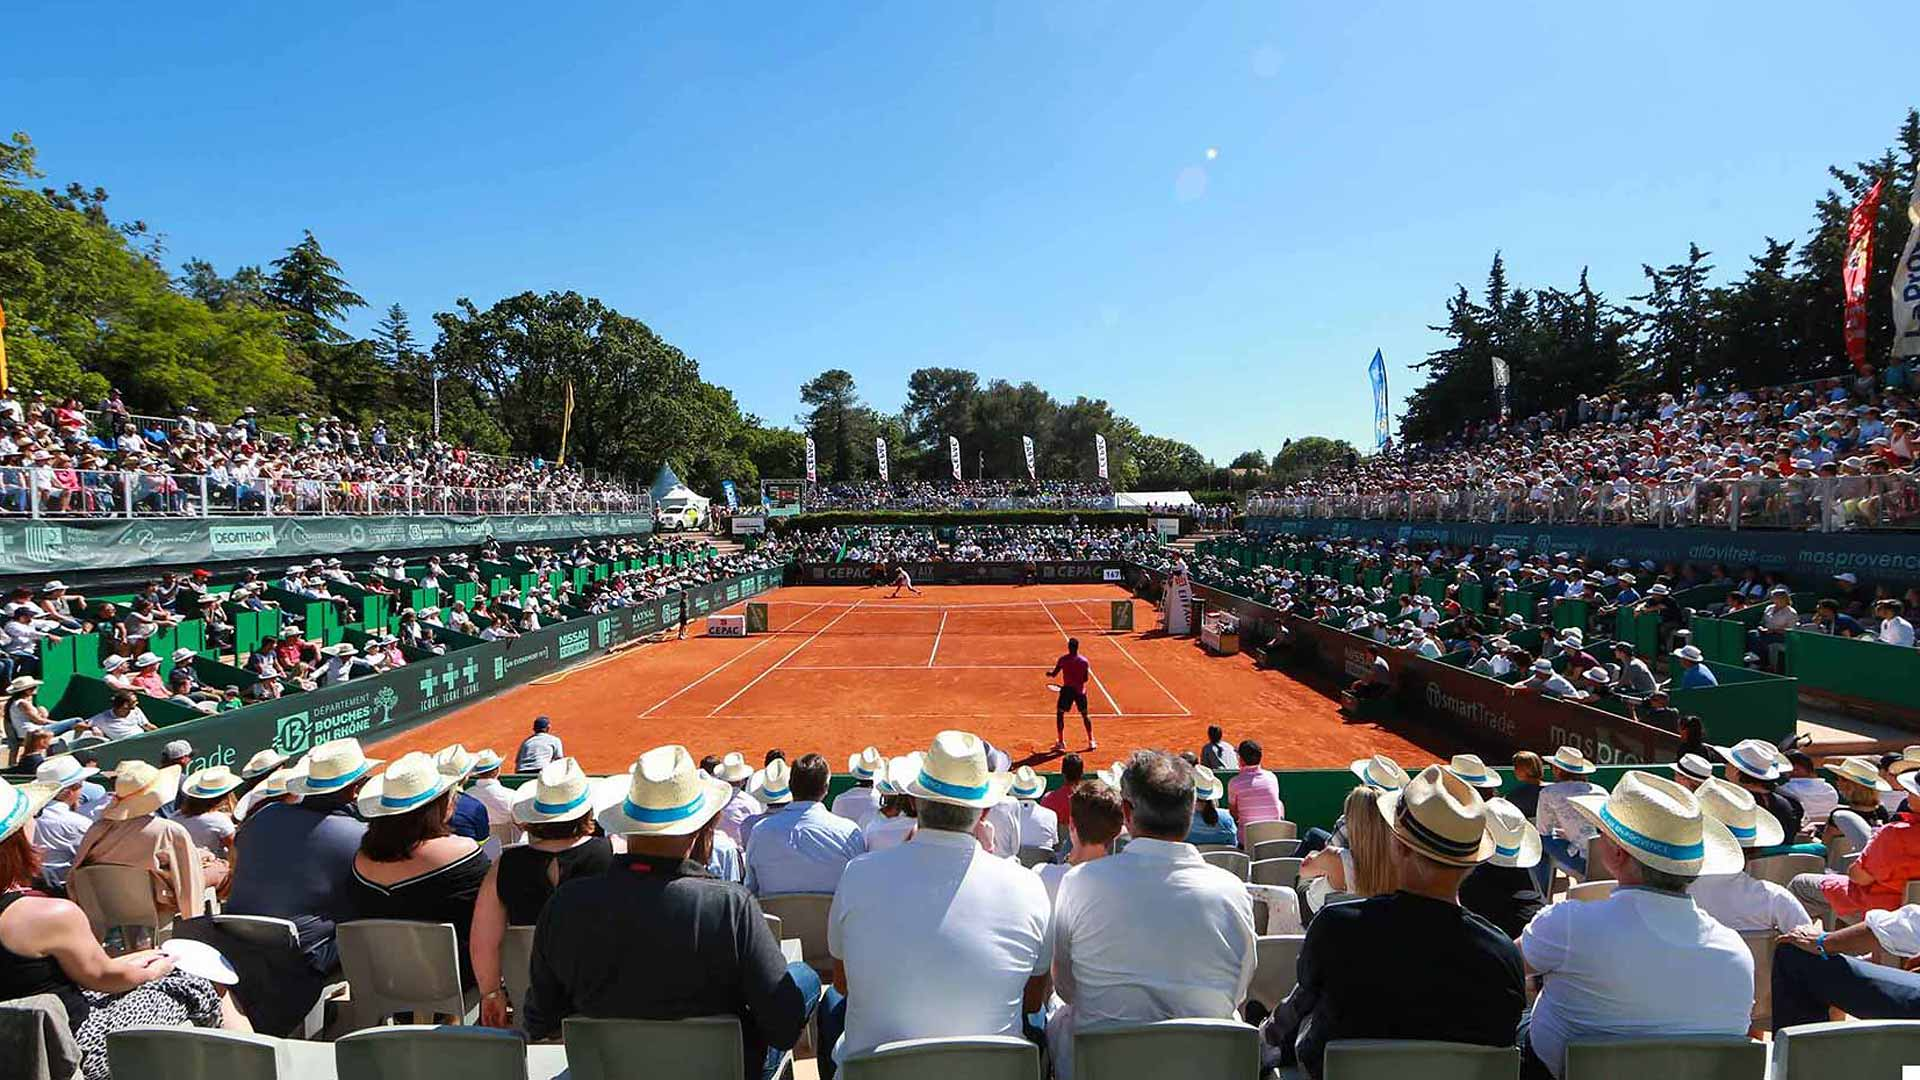 Atp Calendario 2020.Atp Challenger Tour Set For Significant Revamp From 2019